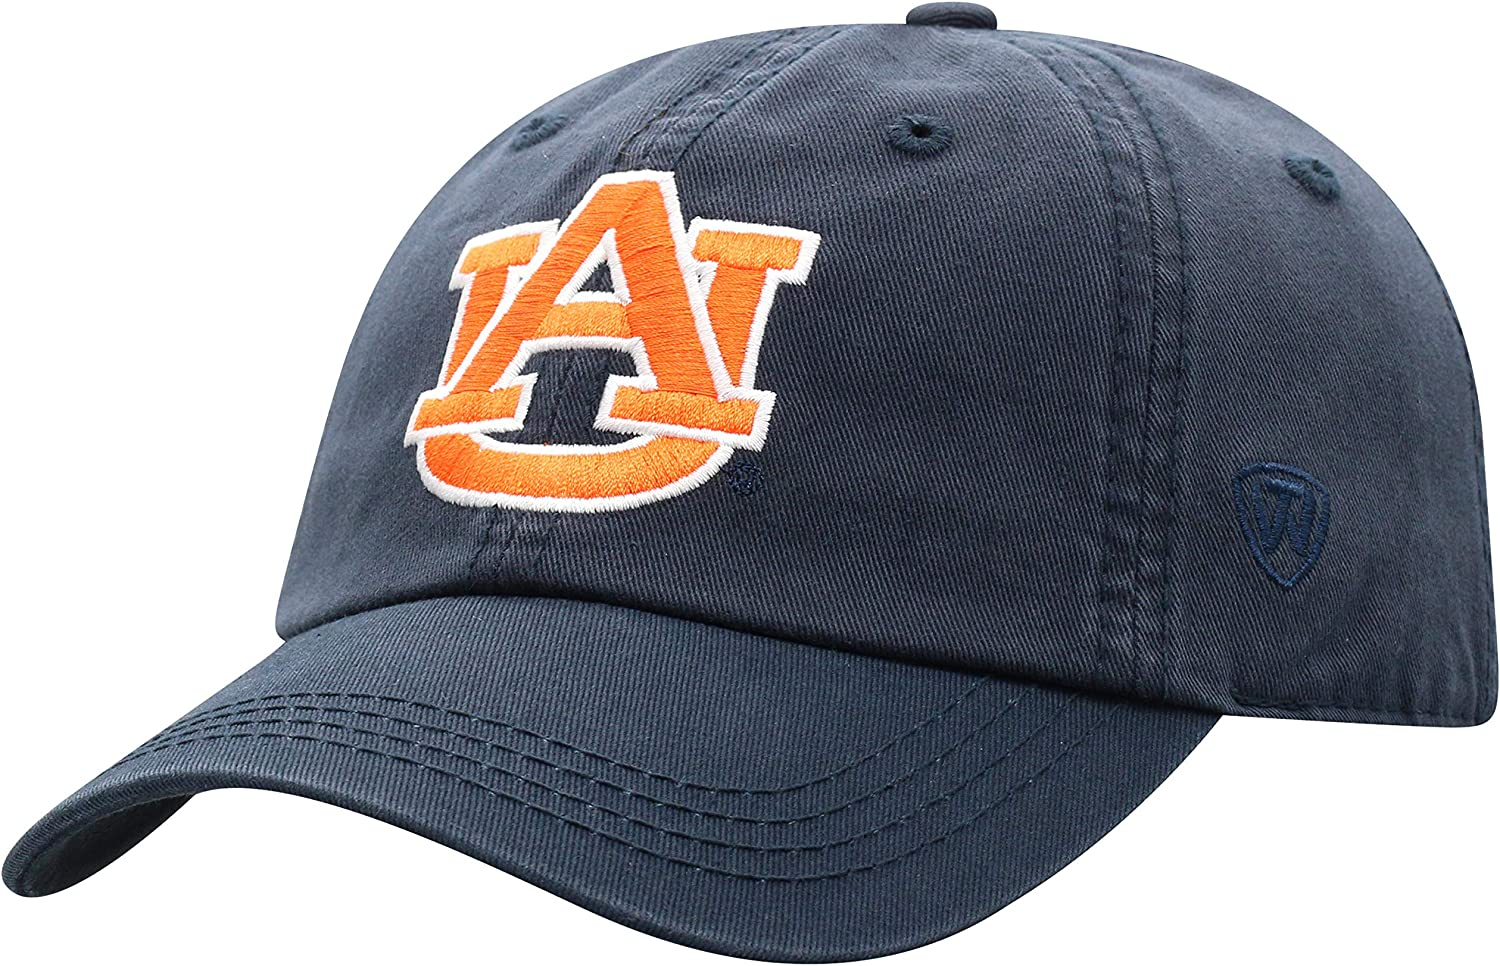 Top of the World NCAA Womens Hat Adjustable Relaxed Fit Team Icon